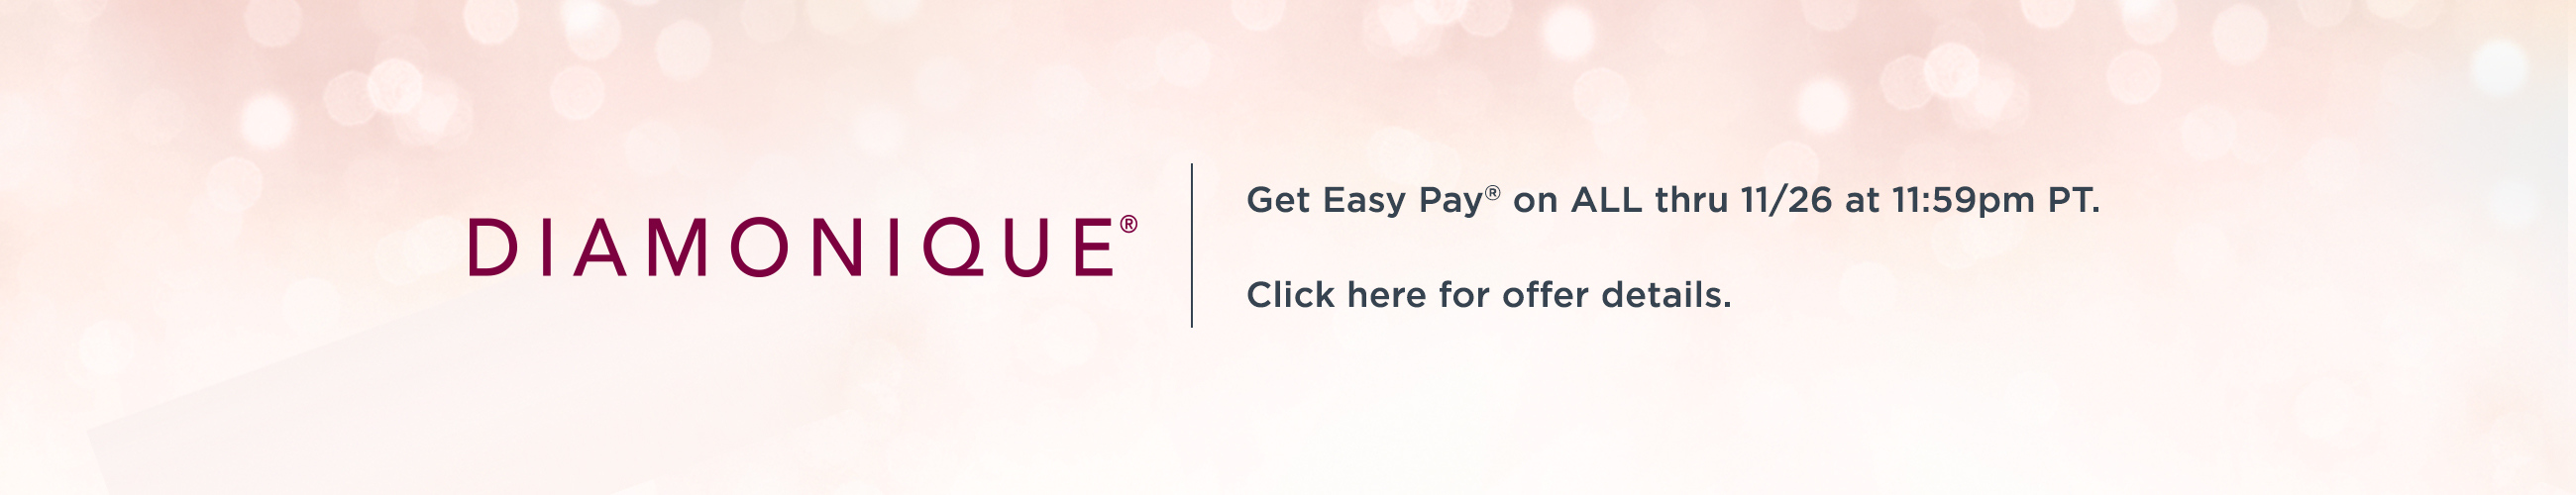 Diamonique® Get Easy Pay® on ALL thru 11/26 at 11:59pm PT.  Click here for offer details.